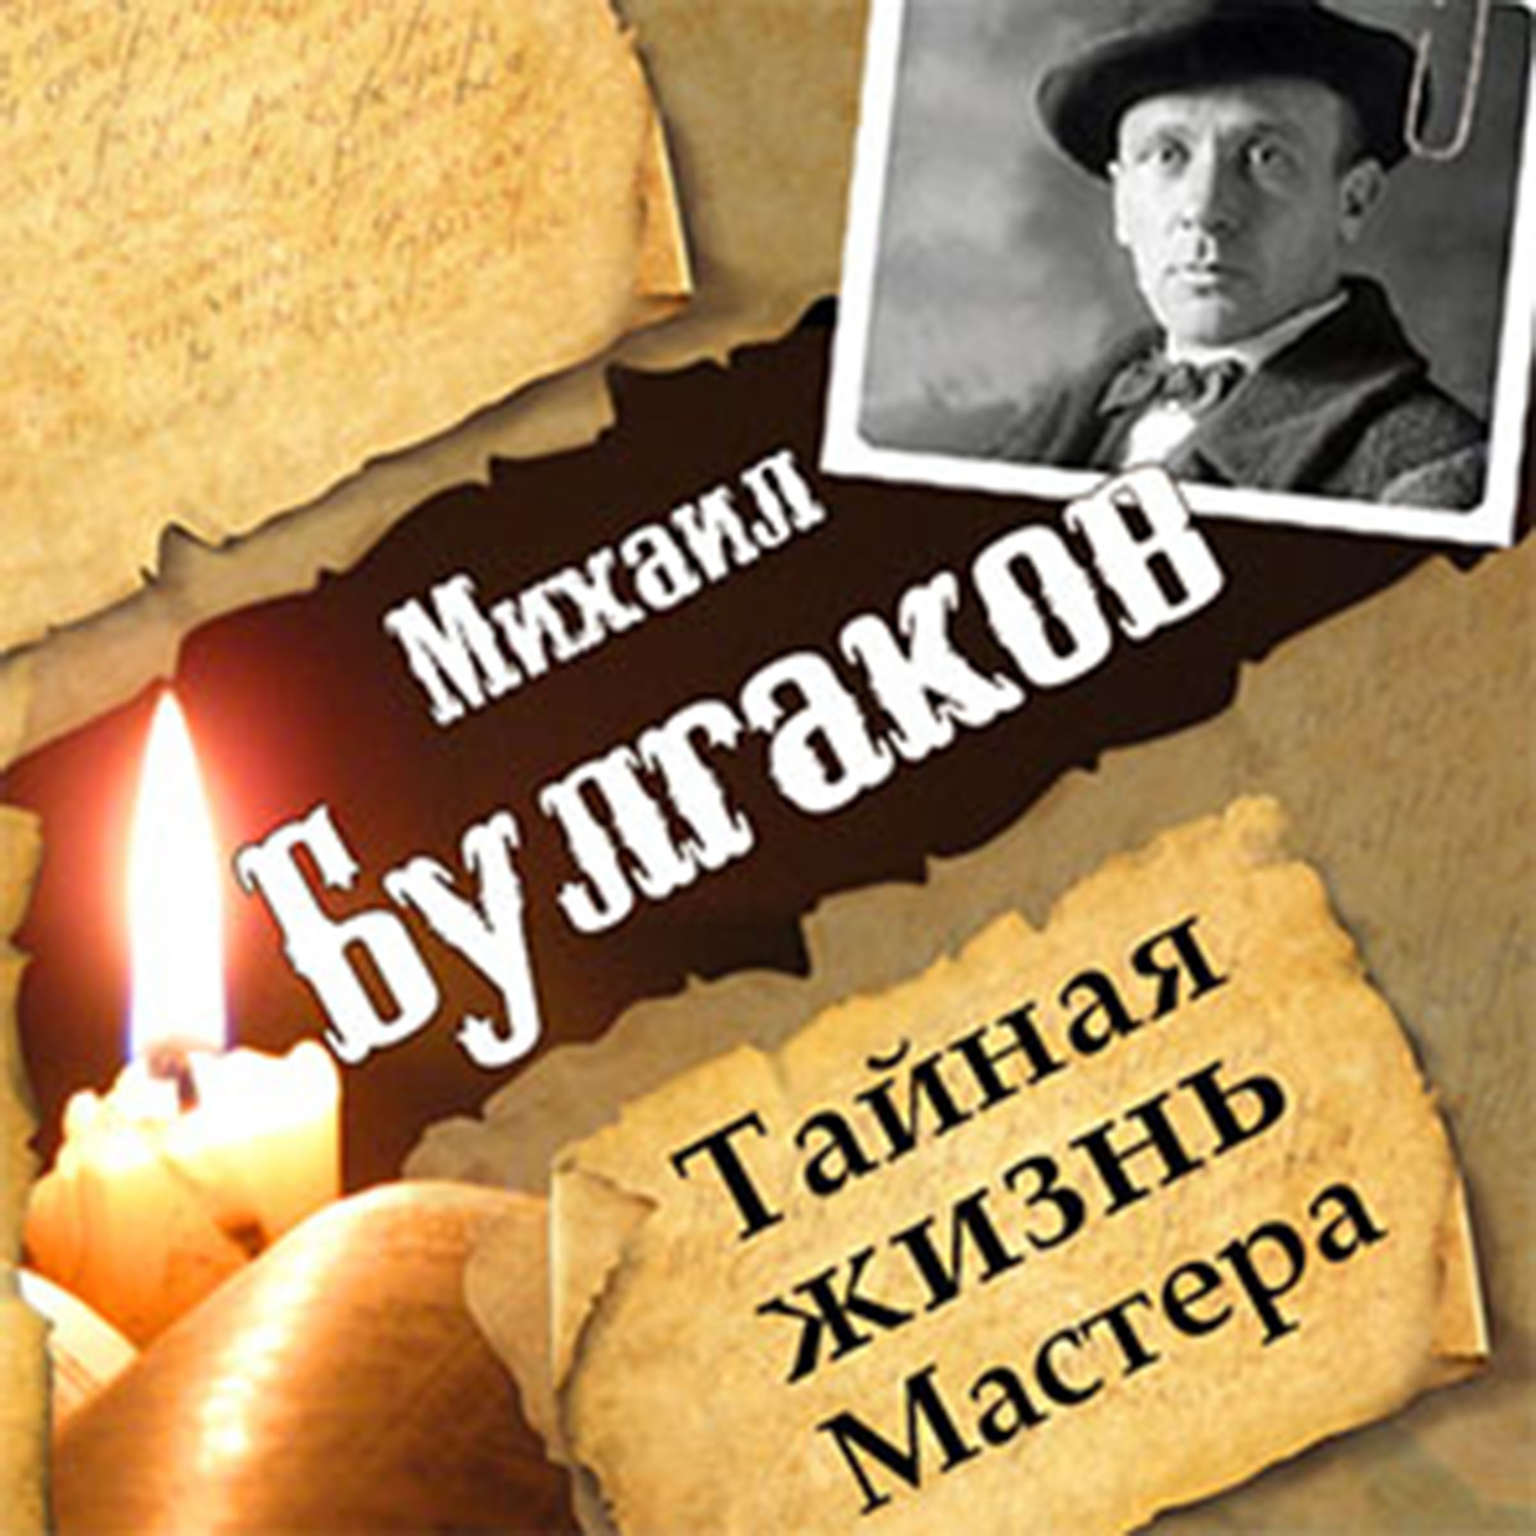 Mikhail Bulgakov. The Secret Life of the Master [Russian Edition] Audiobook, by Leonid Garin